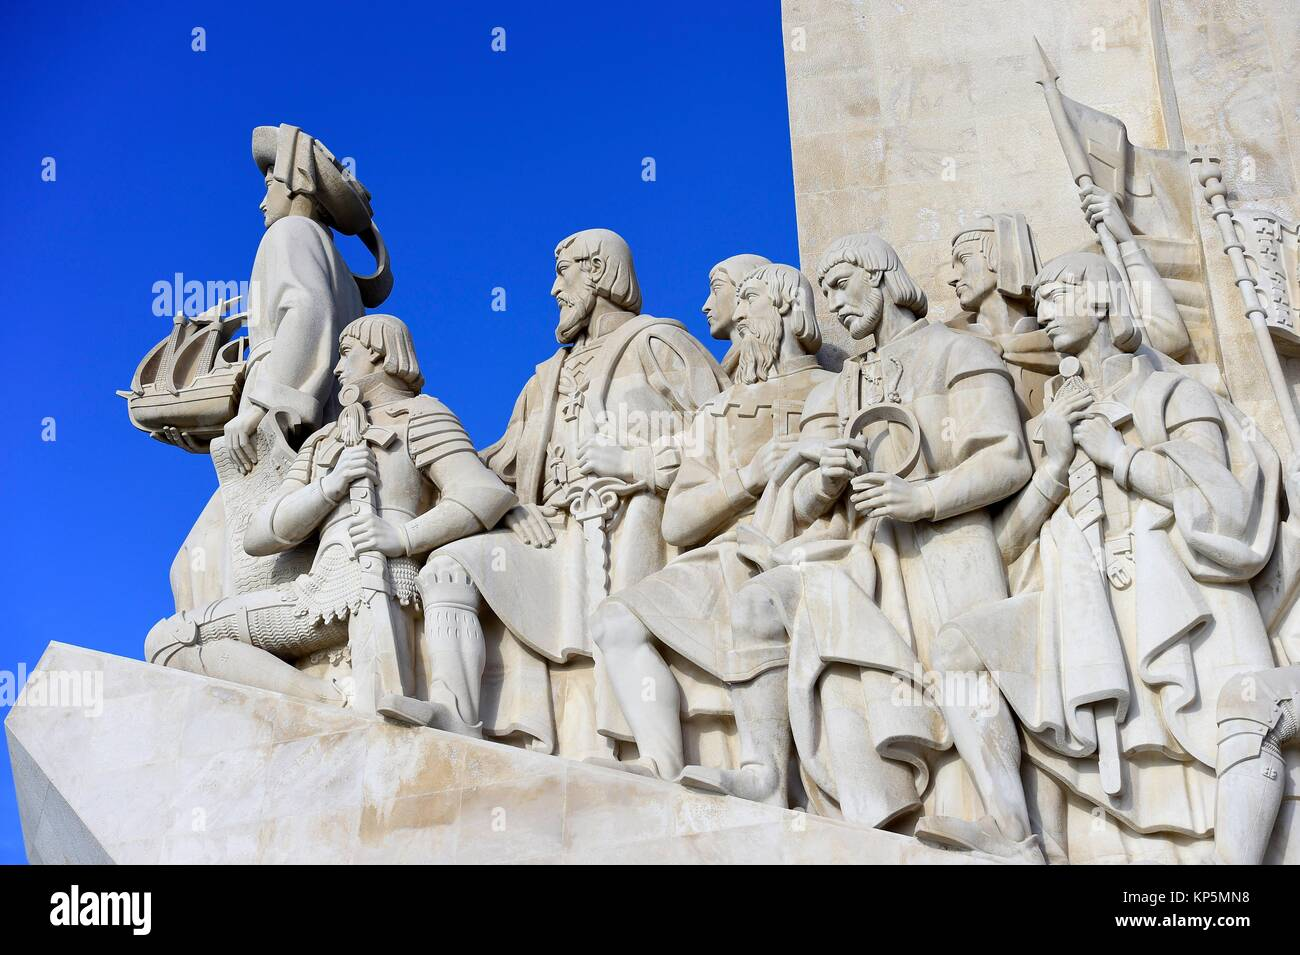 Monument to the Discoveries, Belem, Lisbon, Portugal. - Stock Image